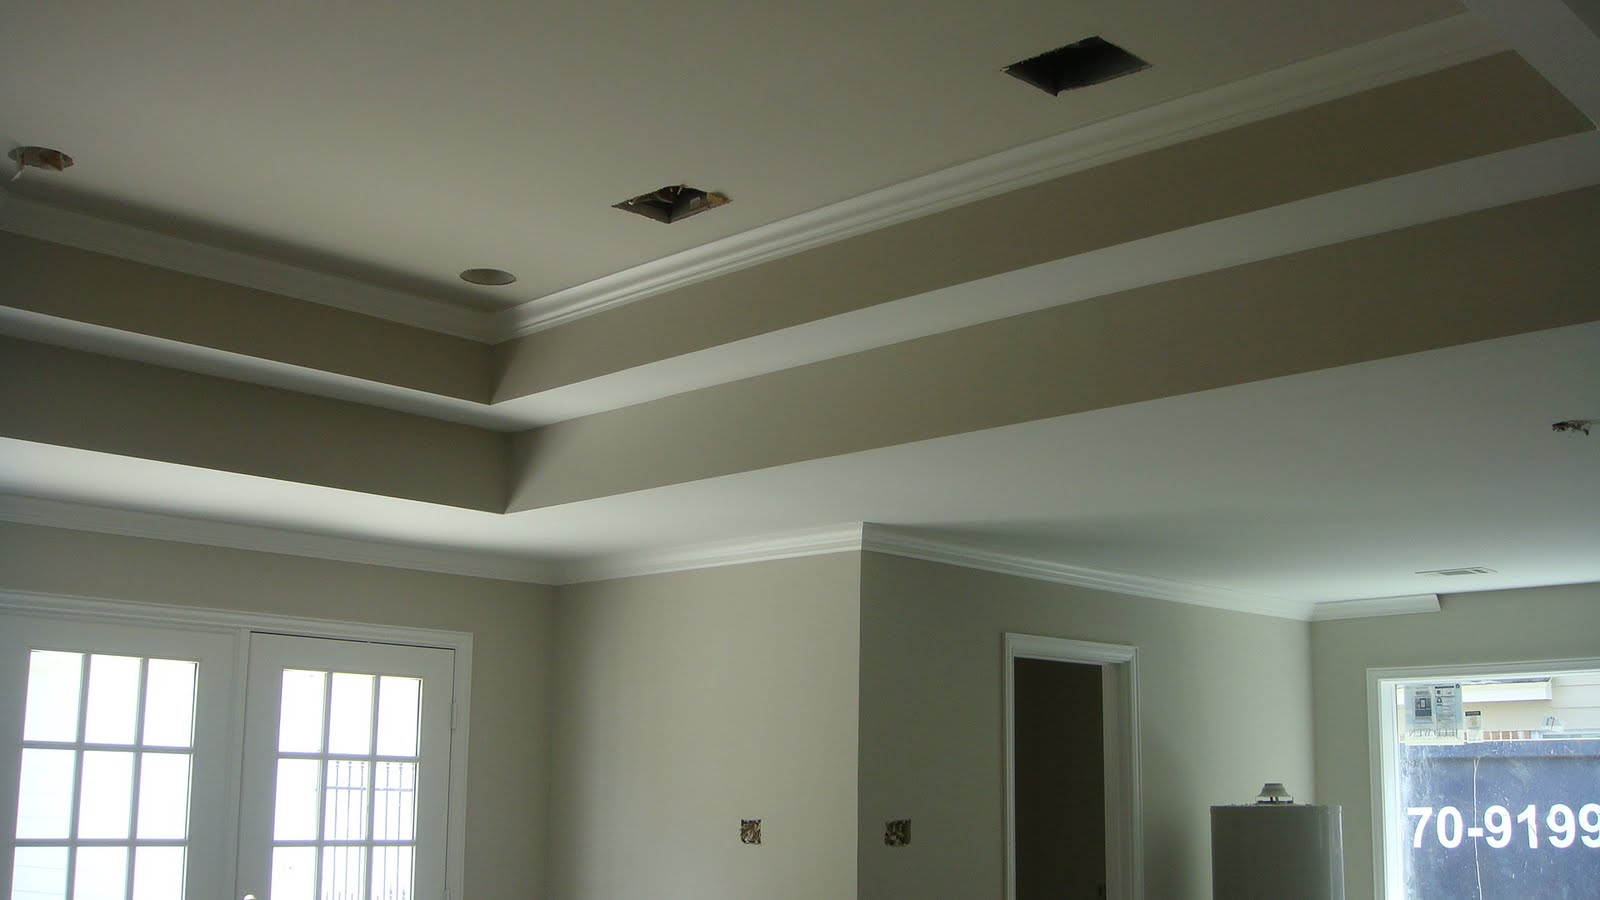 1000+ images about Raised Ceiling Ideas on Pinterest ...